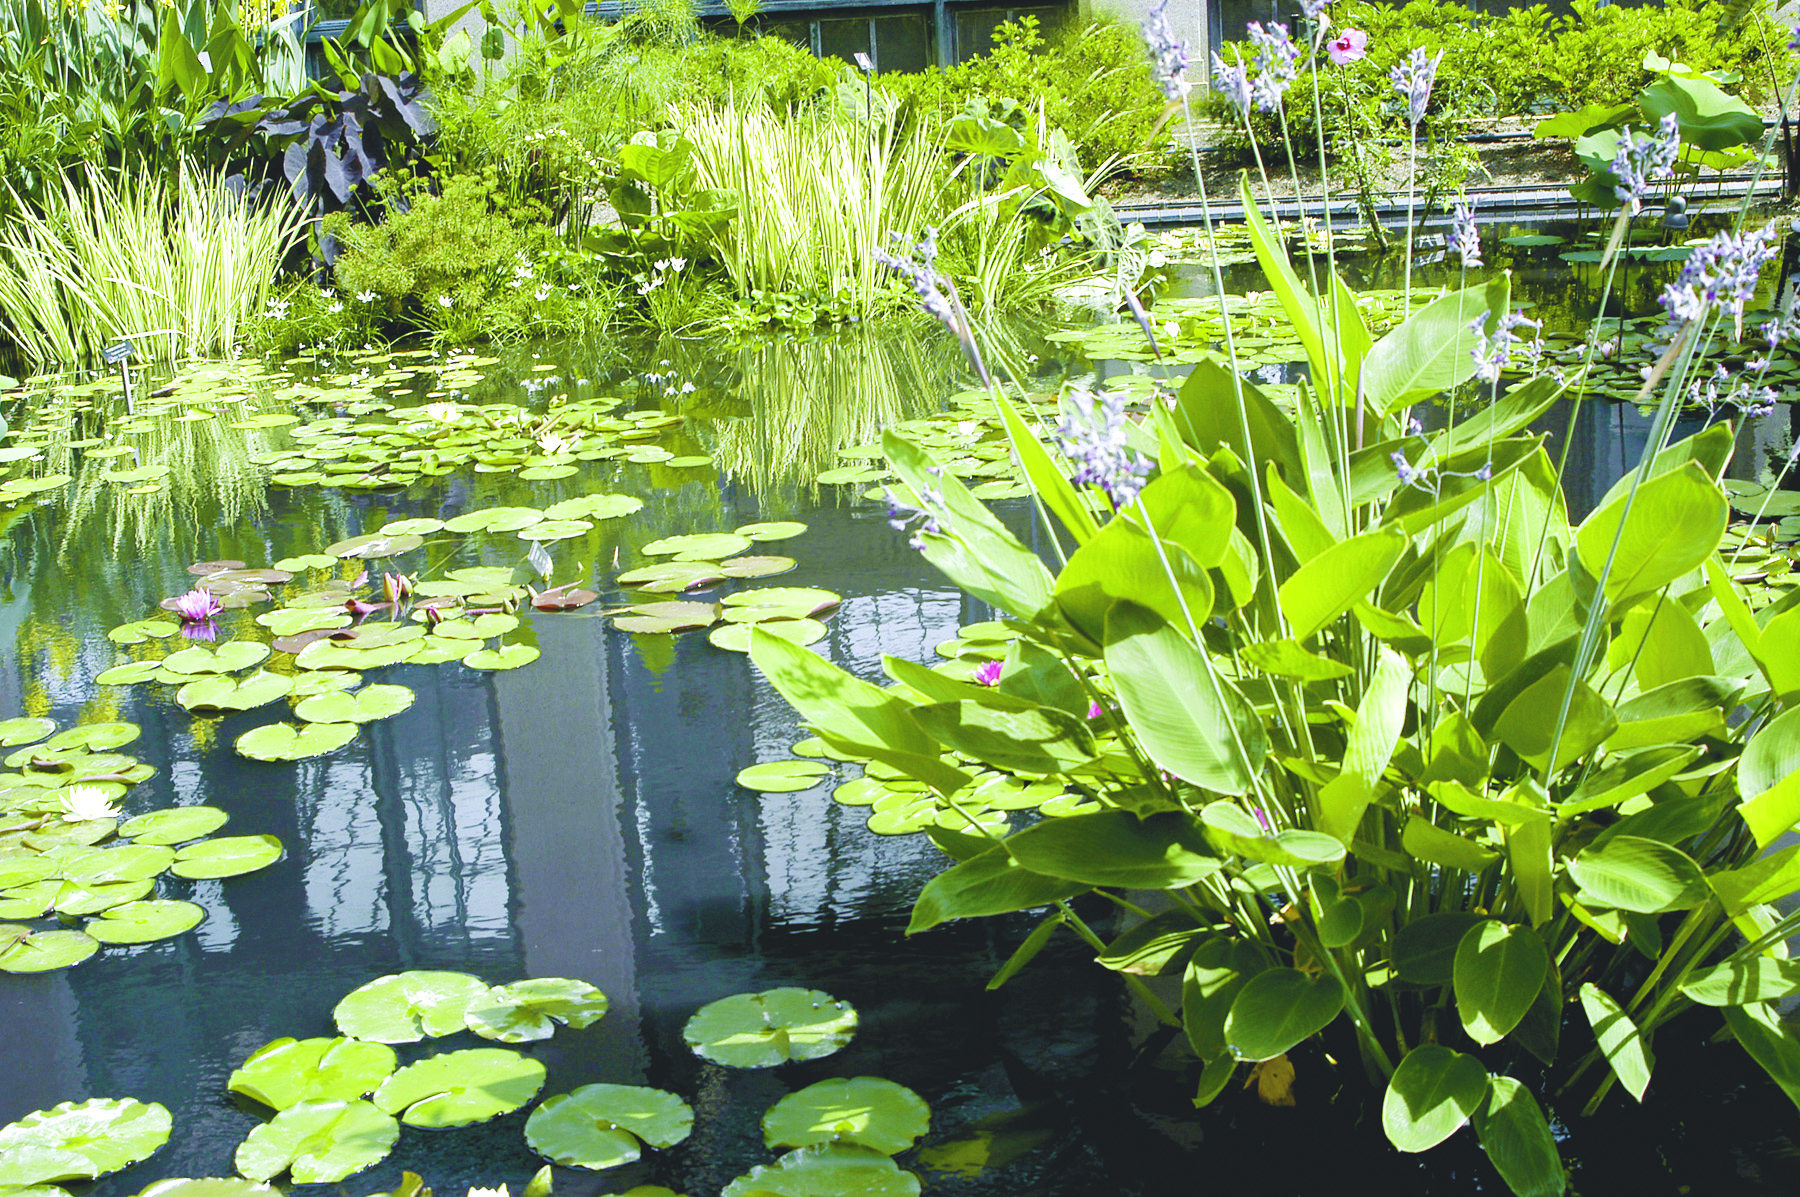 Whitney s farm market and garden center berkshire county for Best aquatic plants